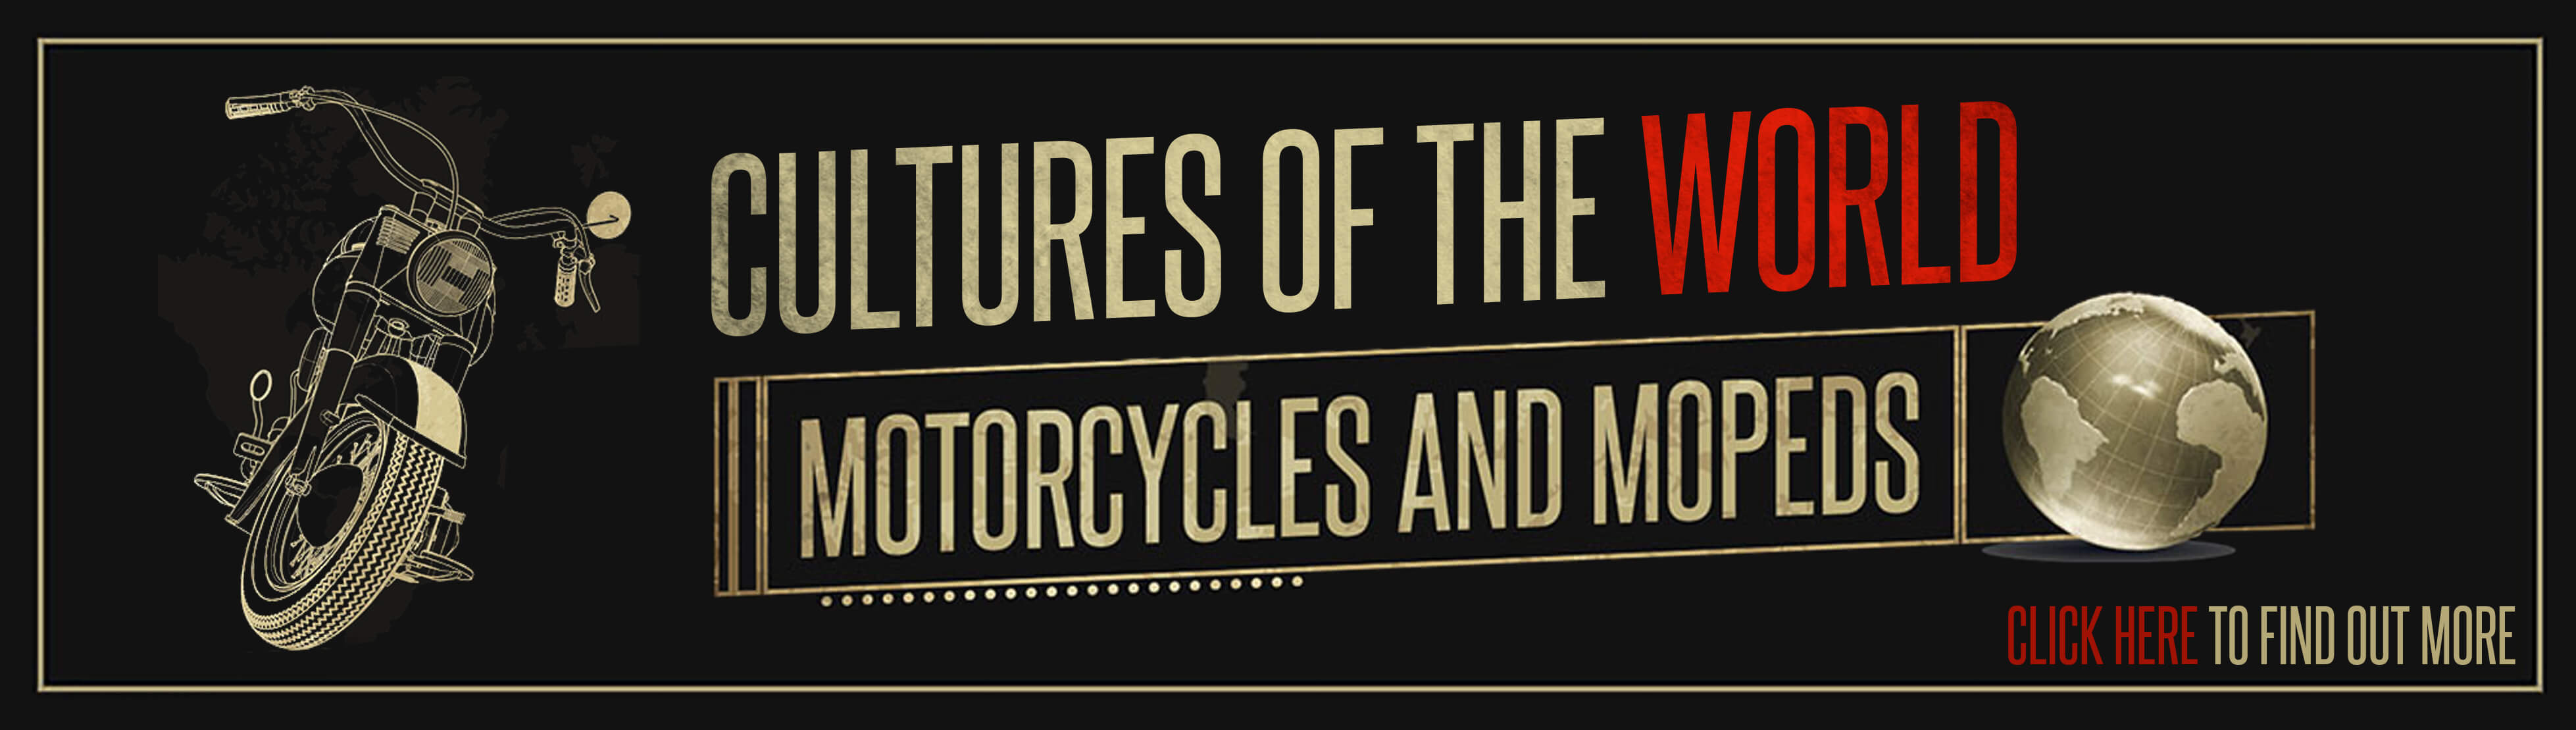 Motorcycle Cultures of the World